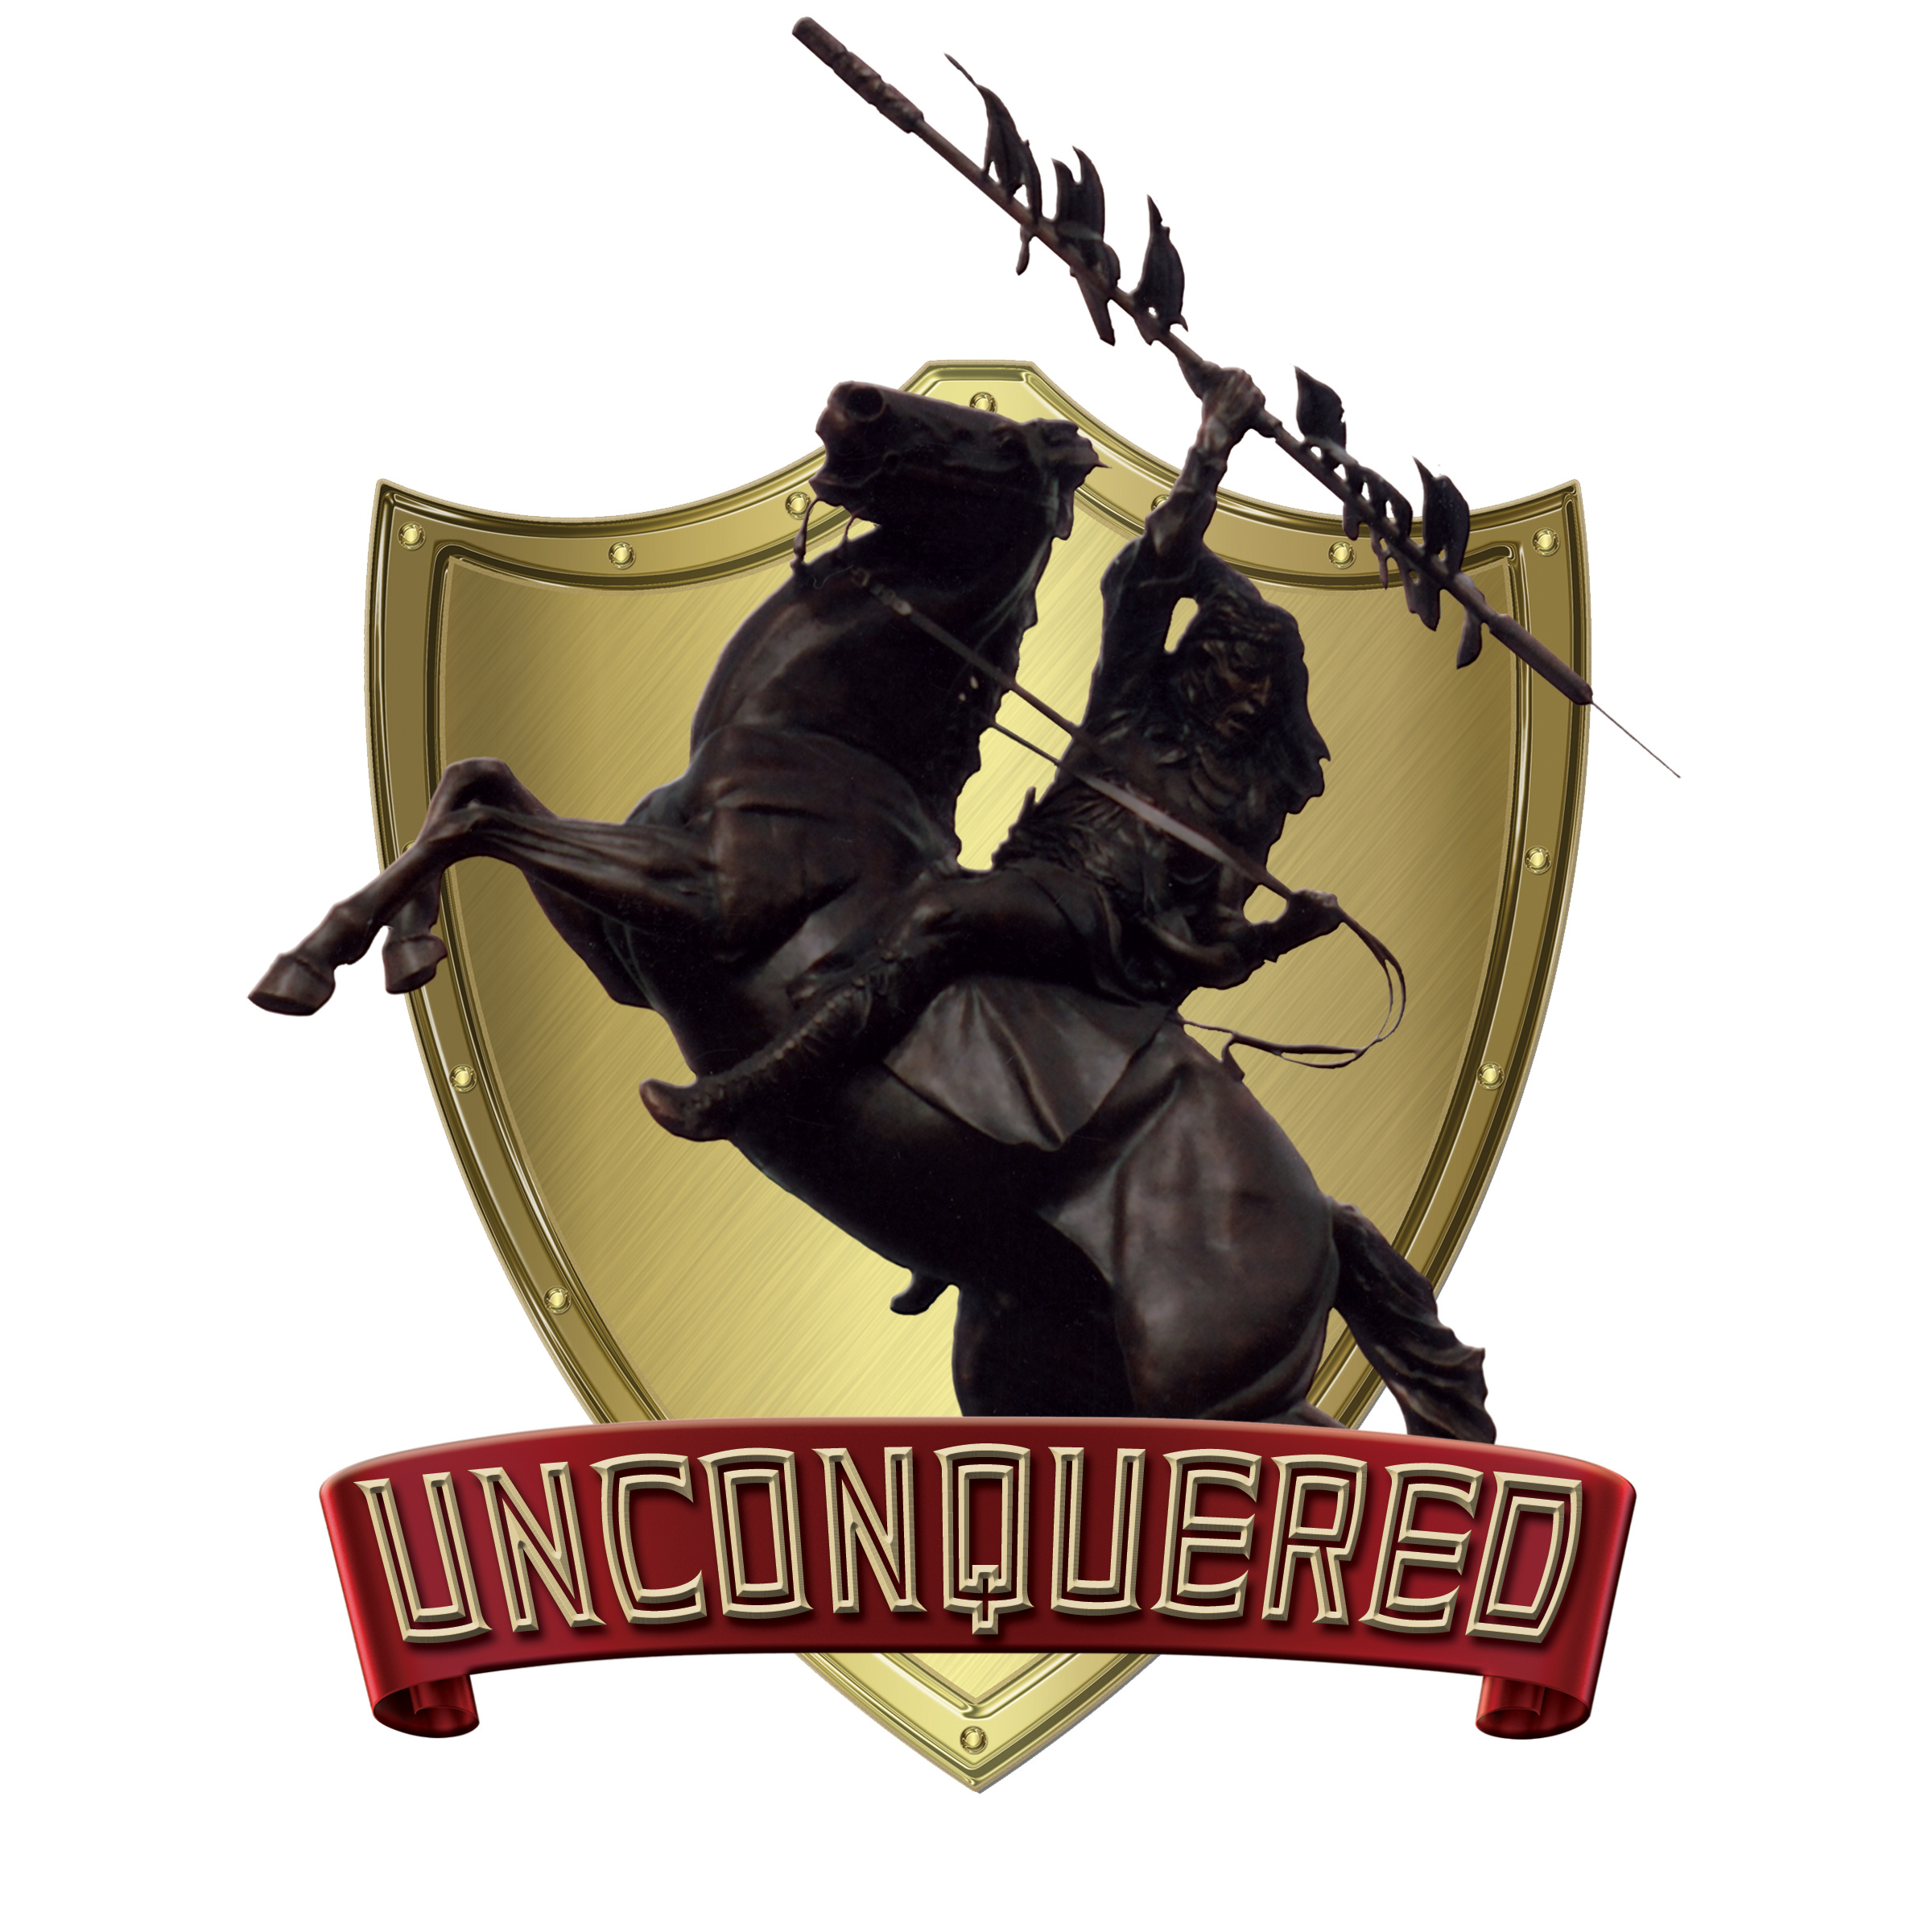 Unconquered Campaign